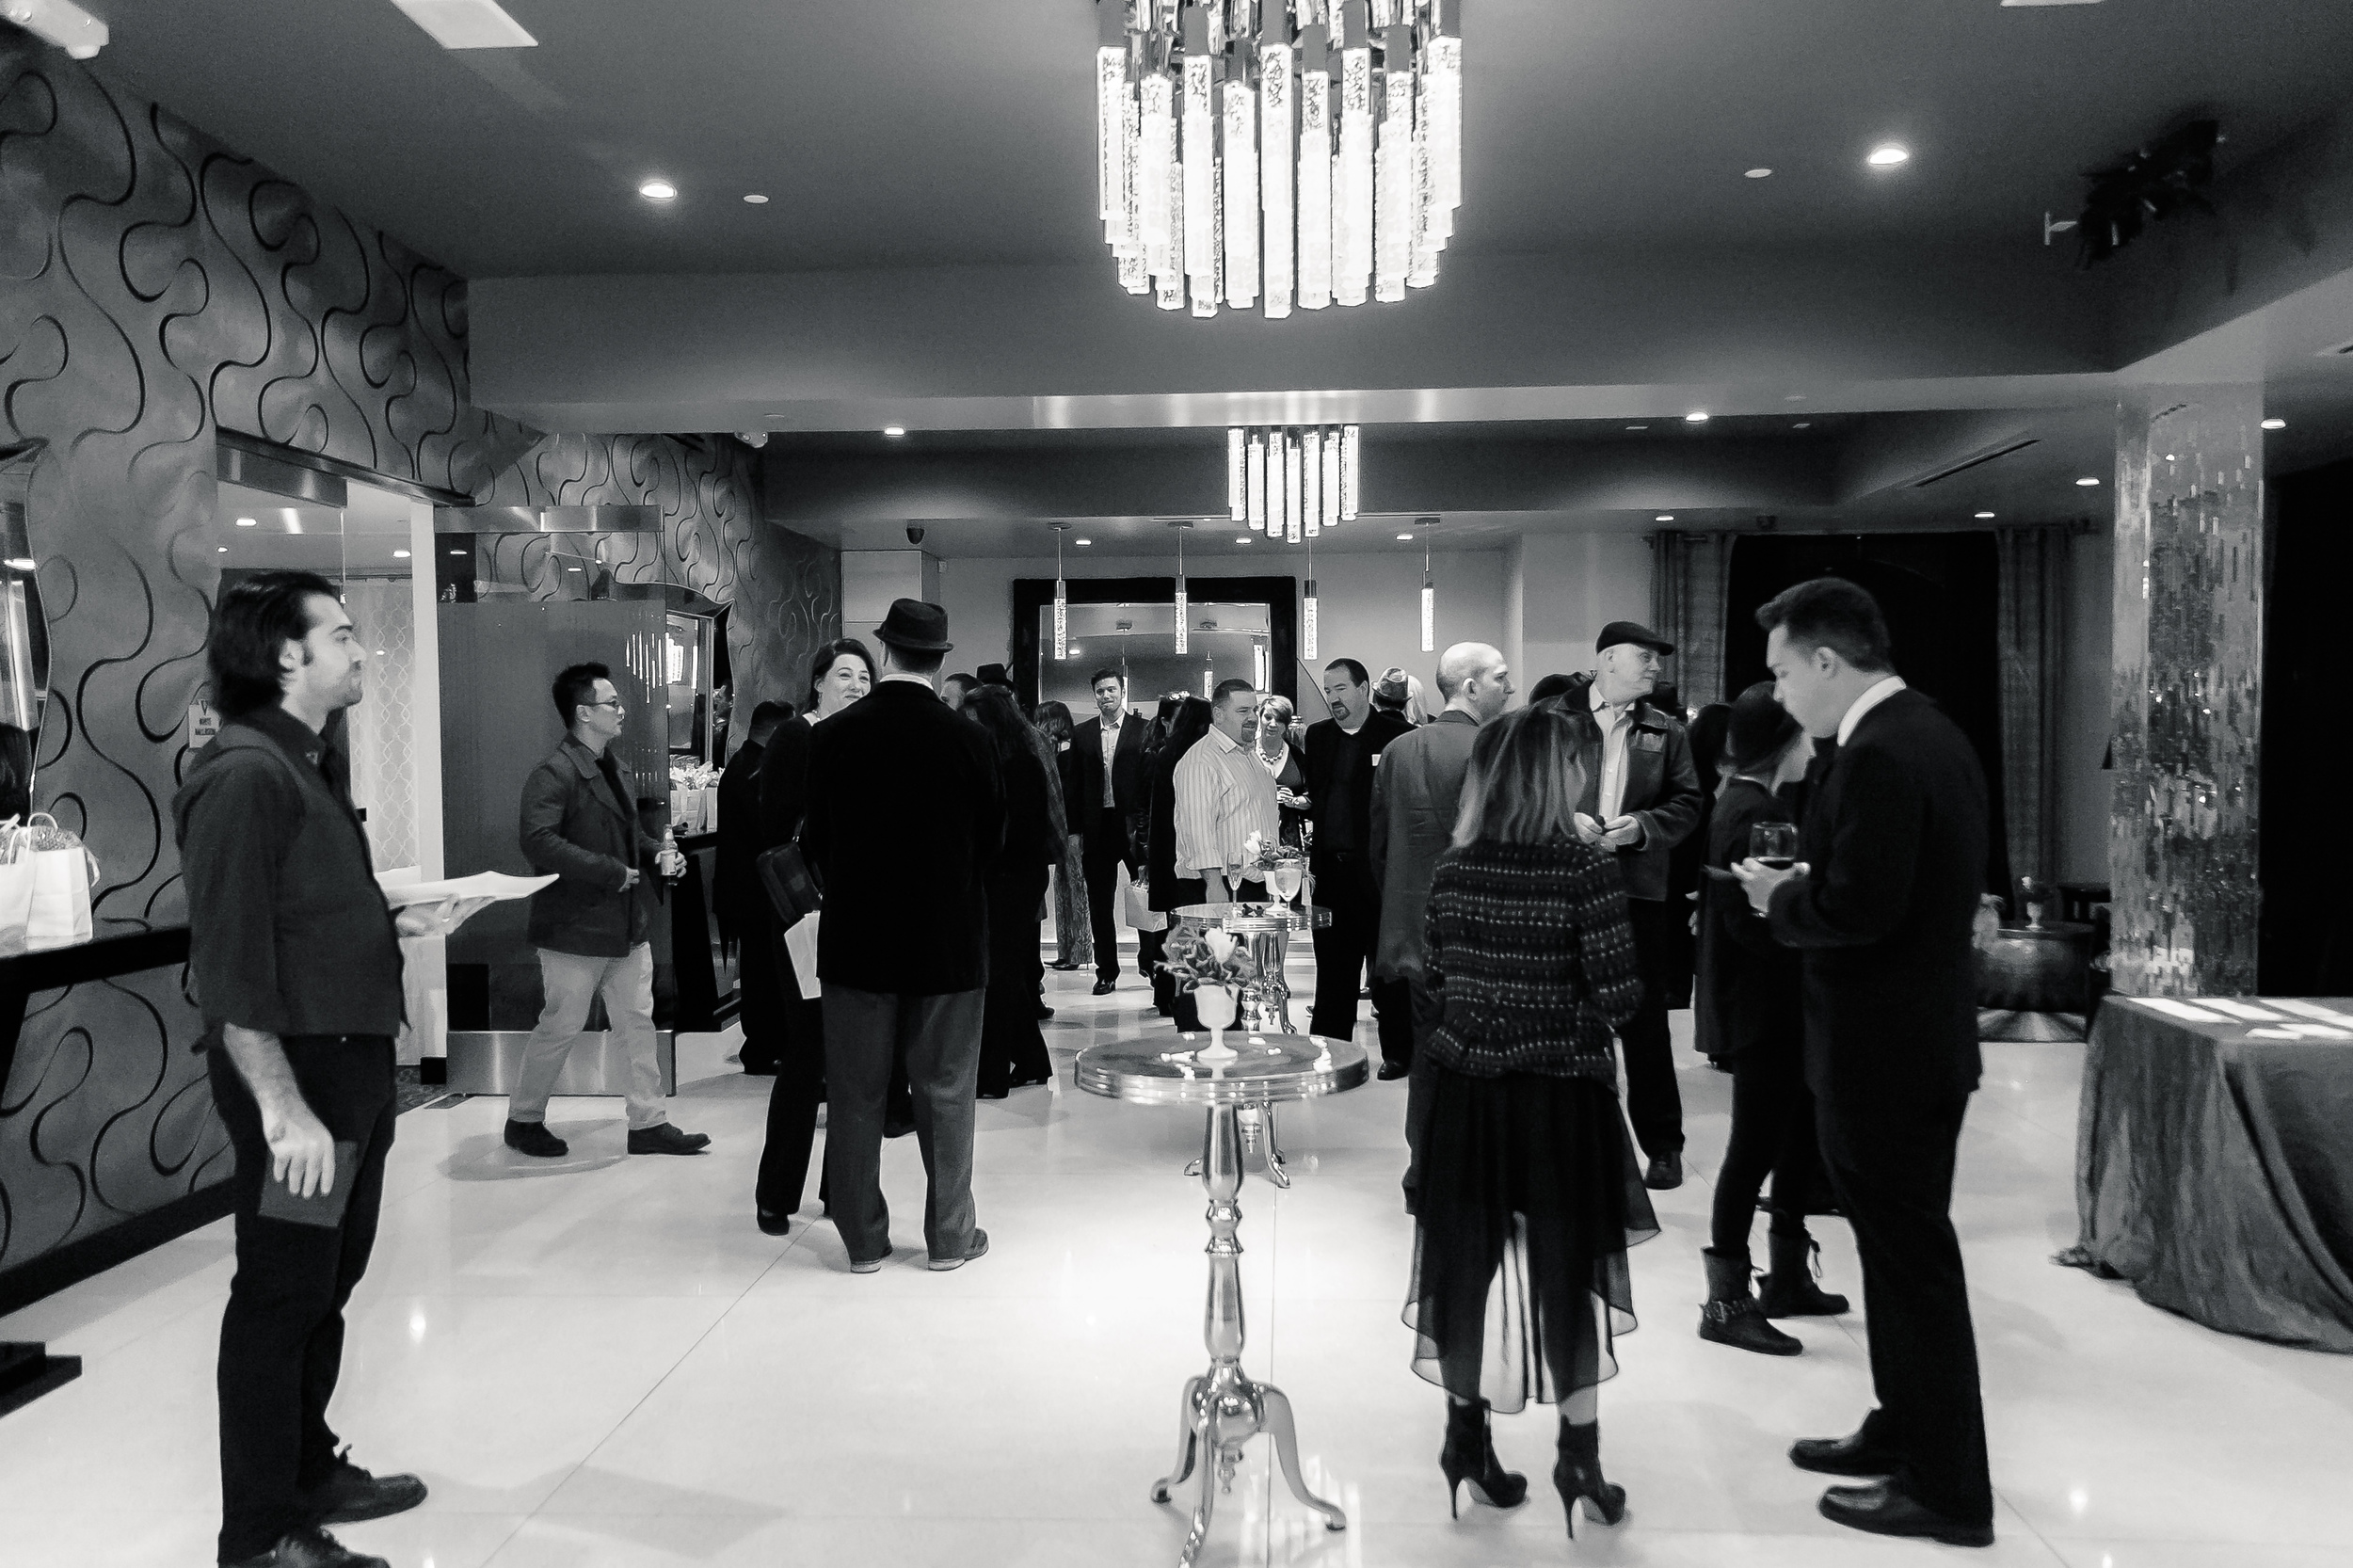 Event Planners Association - Southern California Chapter: 2014 Holiday Party at Vertigo Event Venue